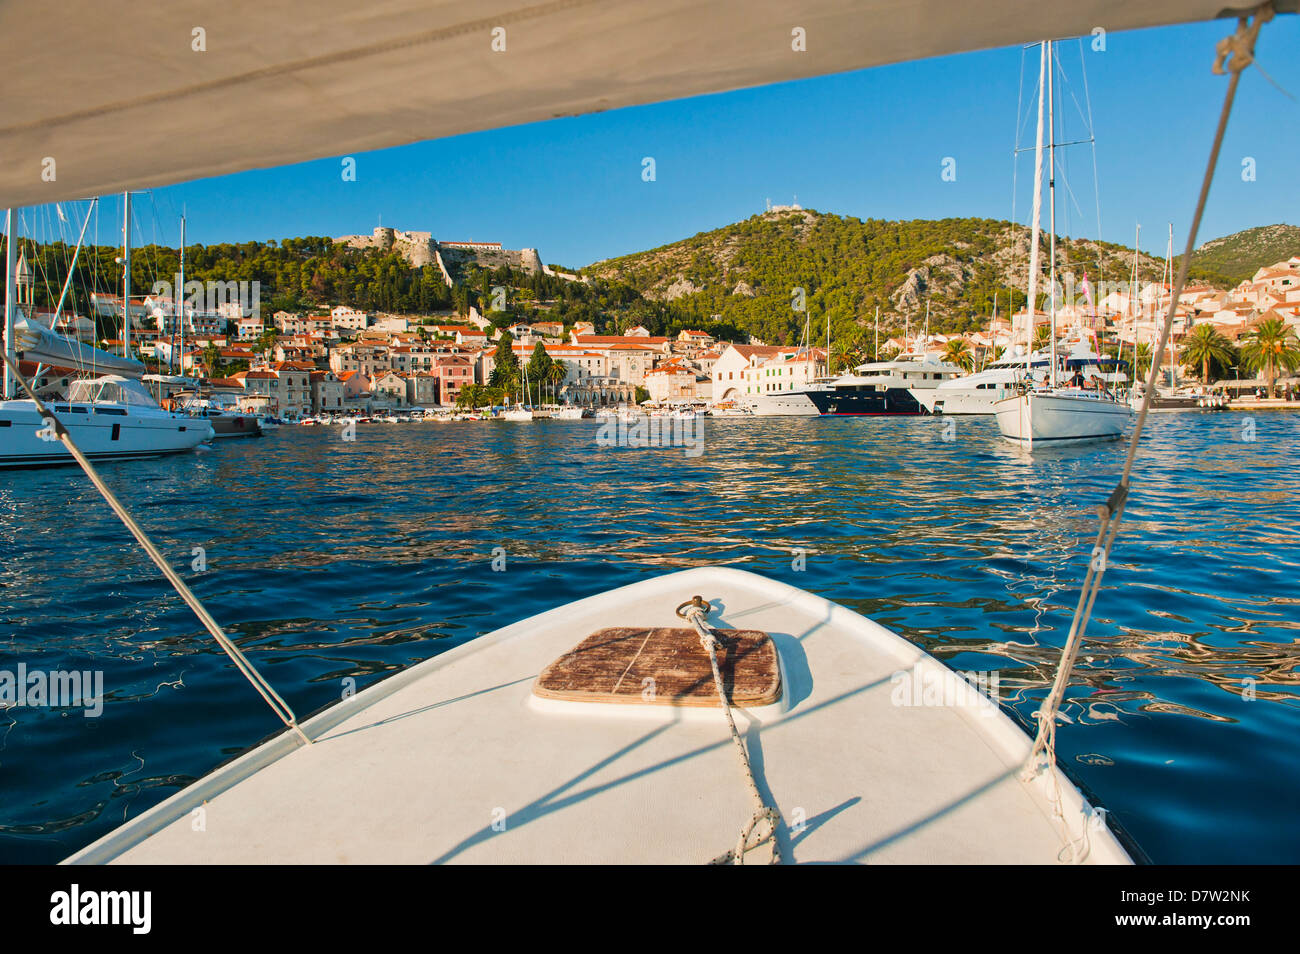 Boat trip returning to Hvar Town, Hvar Island, Dalmatian Coast, Adriatic, Croatia - Stock Image